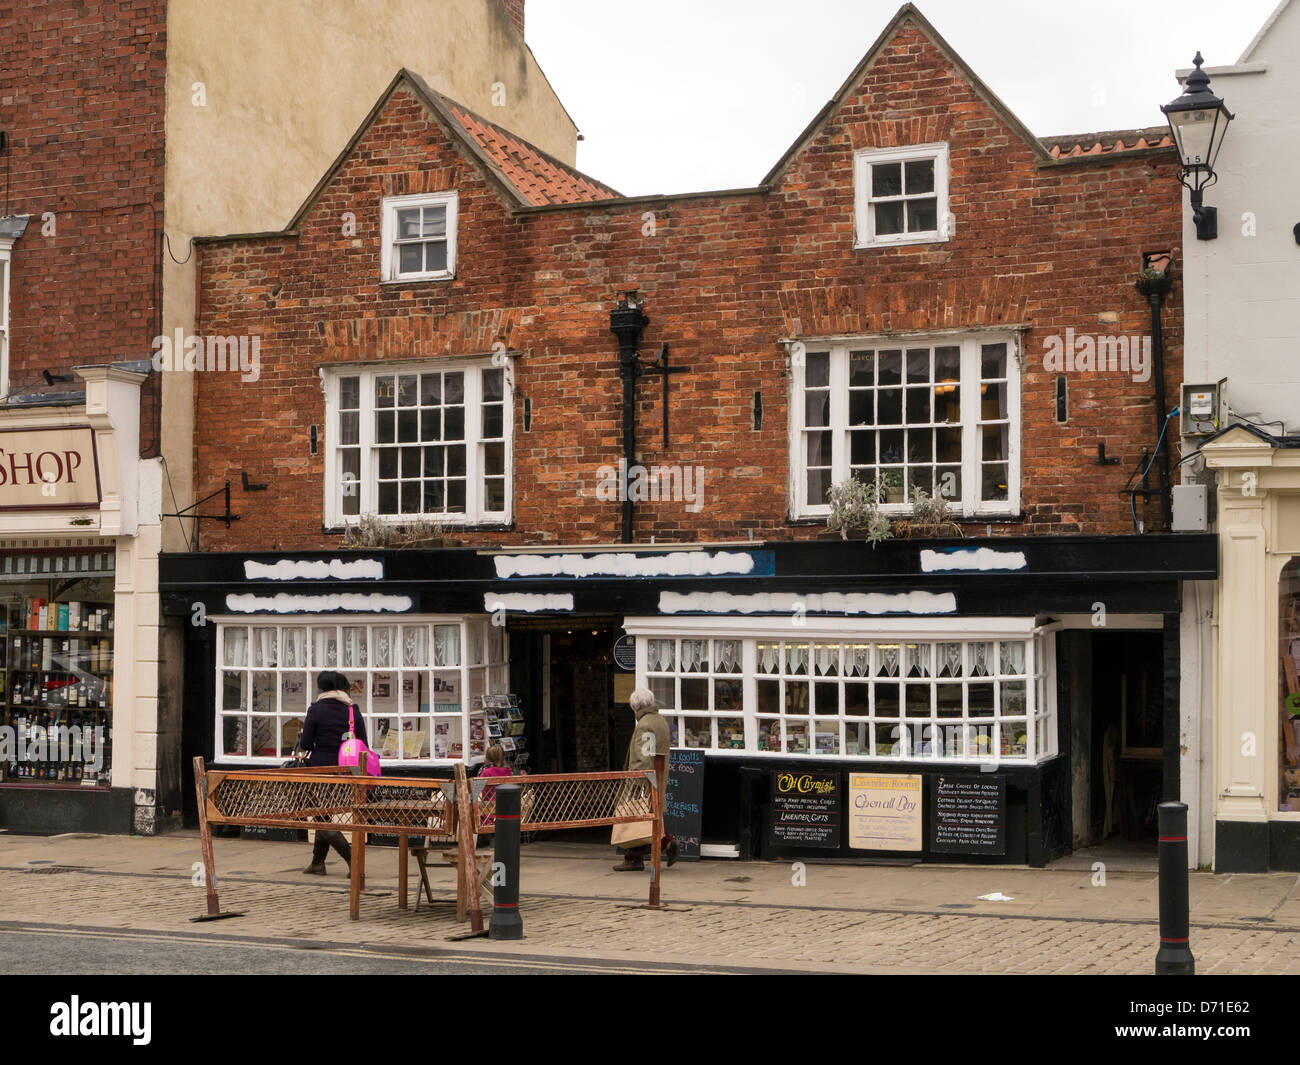 The Old Chemist Shop in England in Knaresborough, North Yorkshire Stock Photo